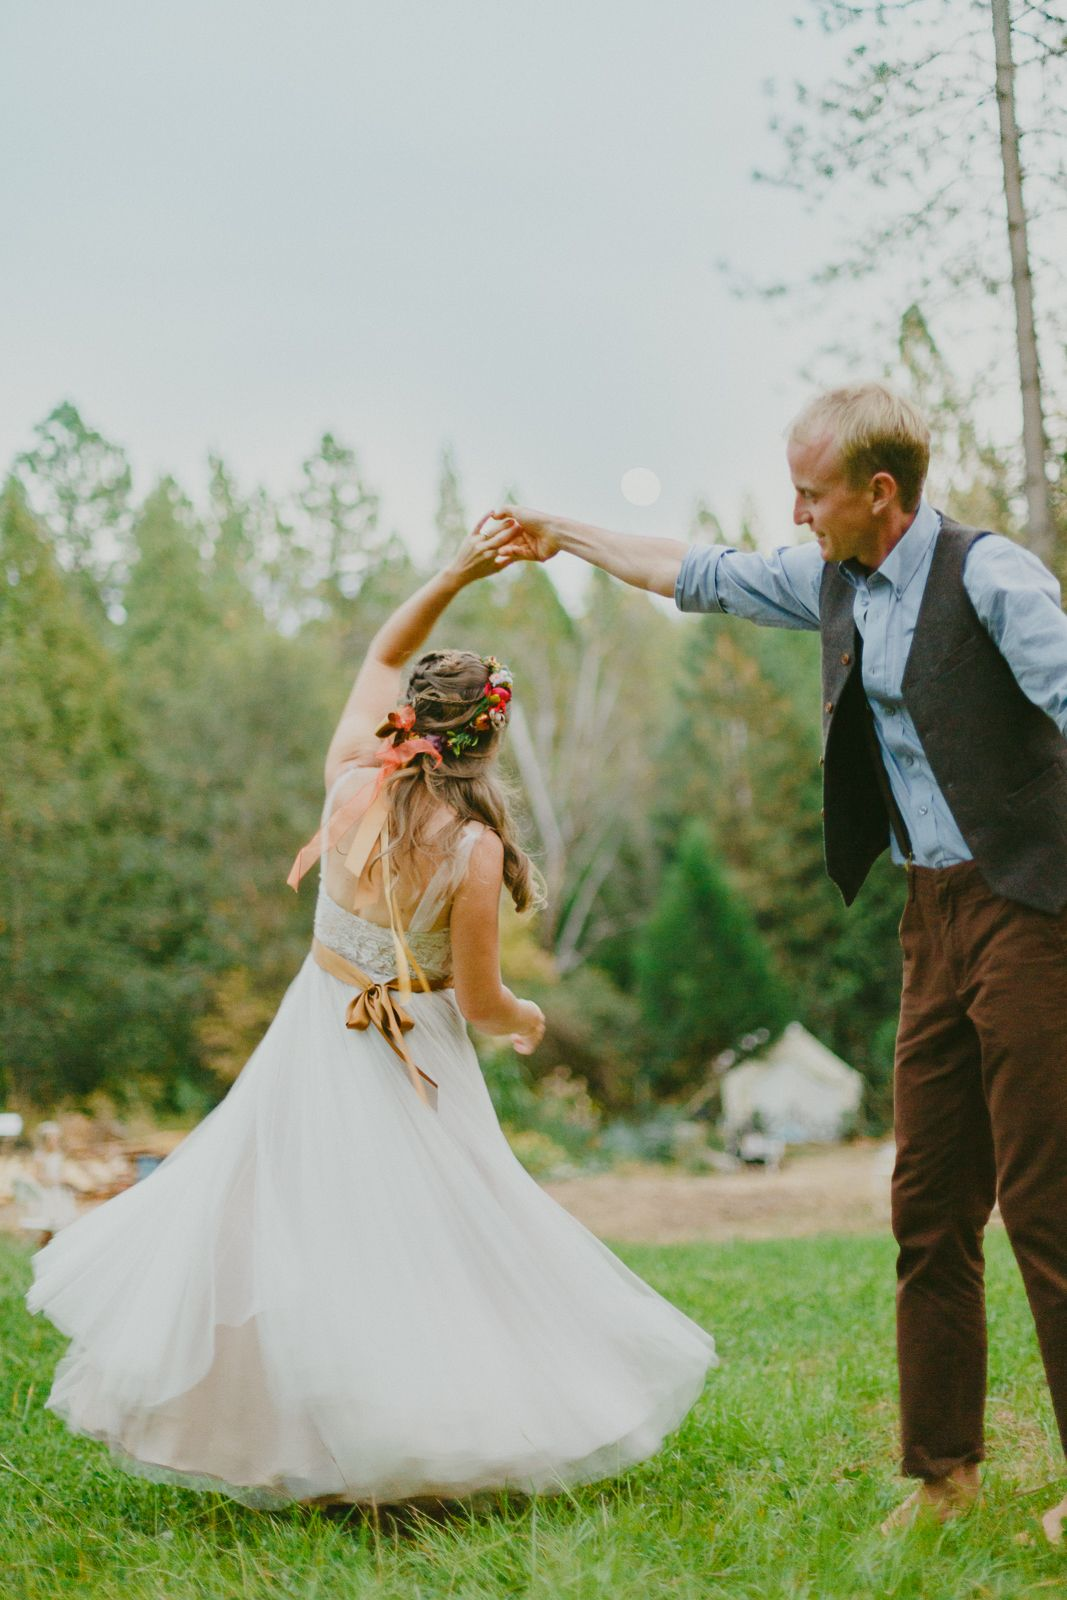 wedding couple dance in the grass in nevada city, nevada county.